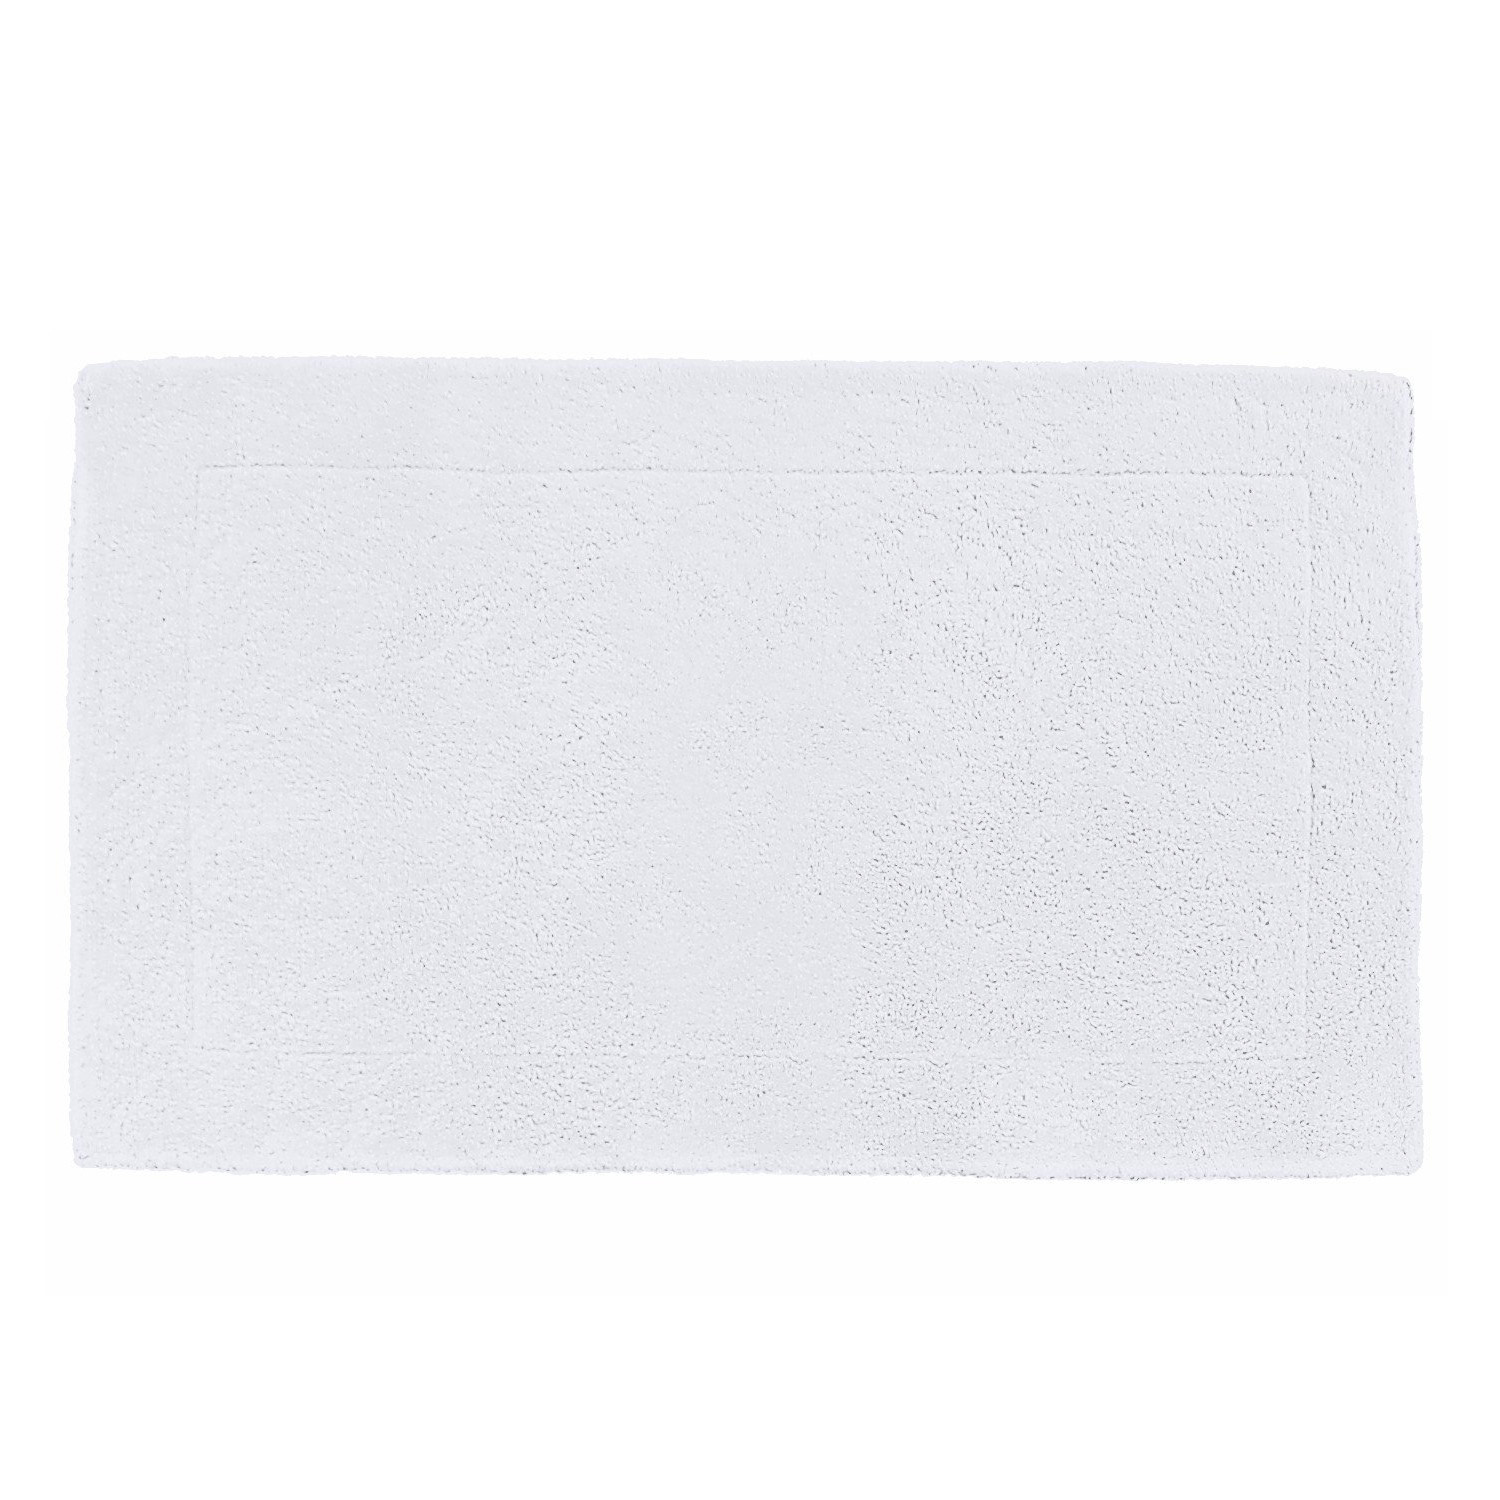 Double Sided Bath Rugs - Assorted Colours-3